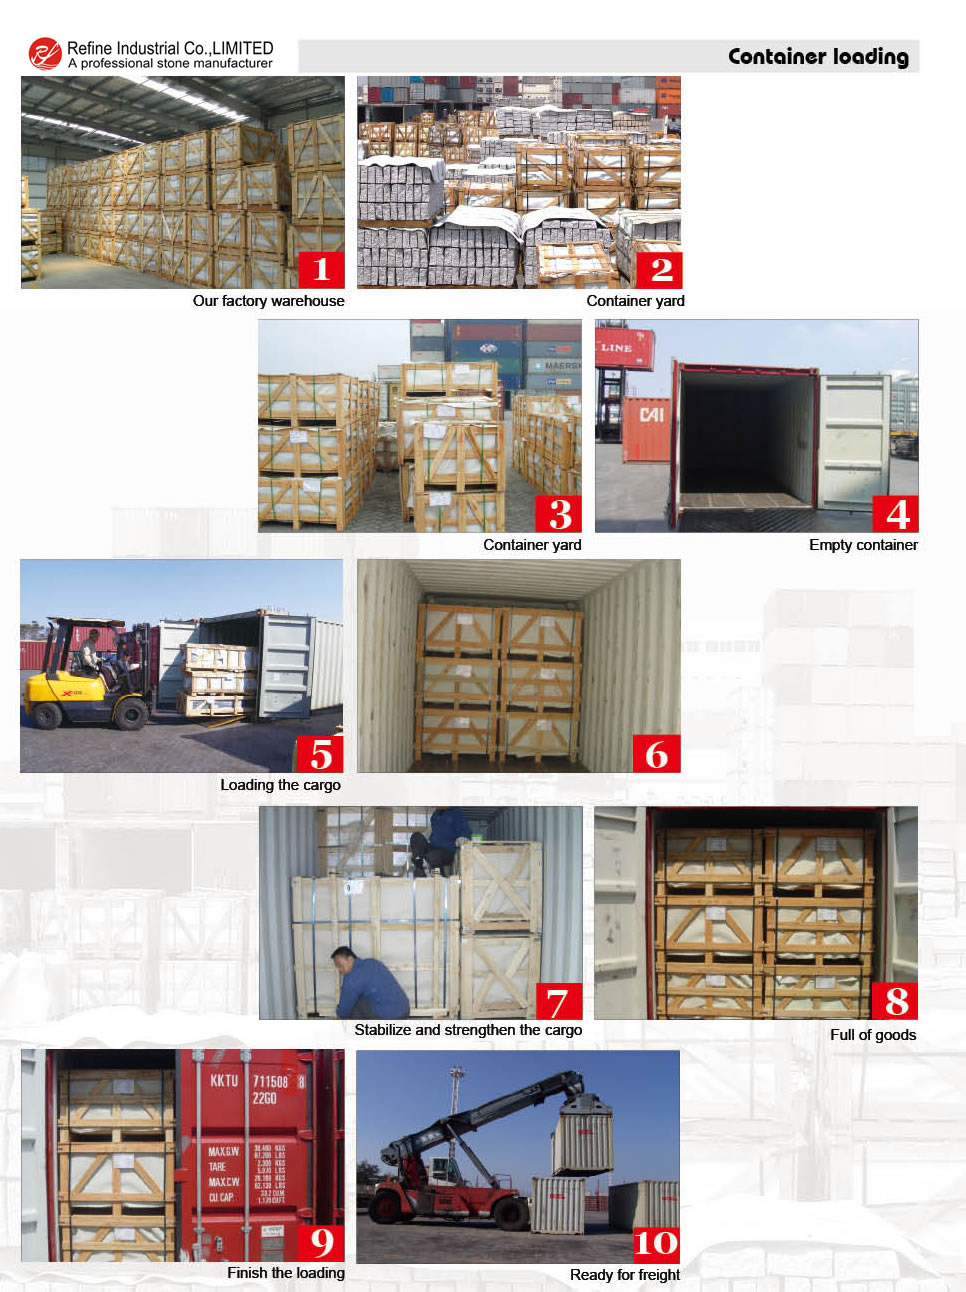 Container Loading - Refine Industrial Co ,LIMITED